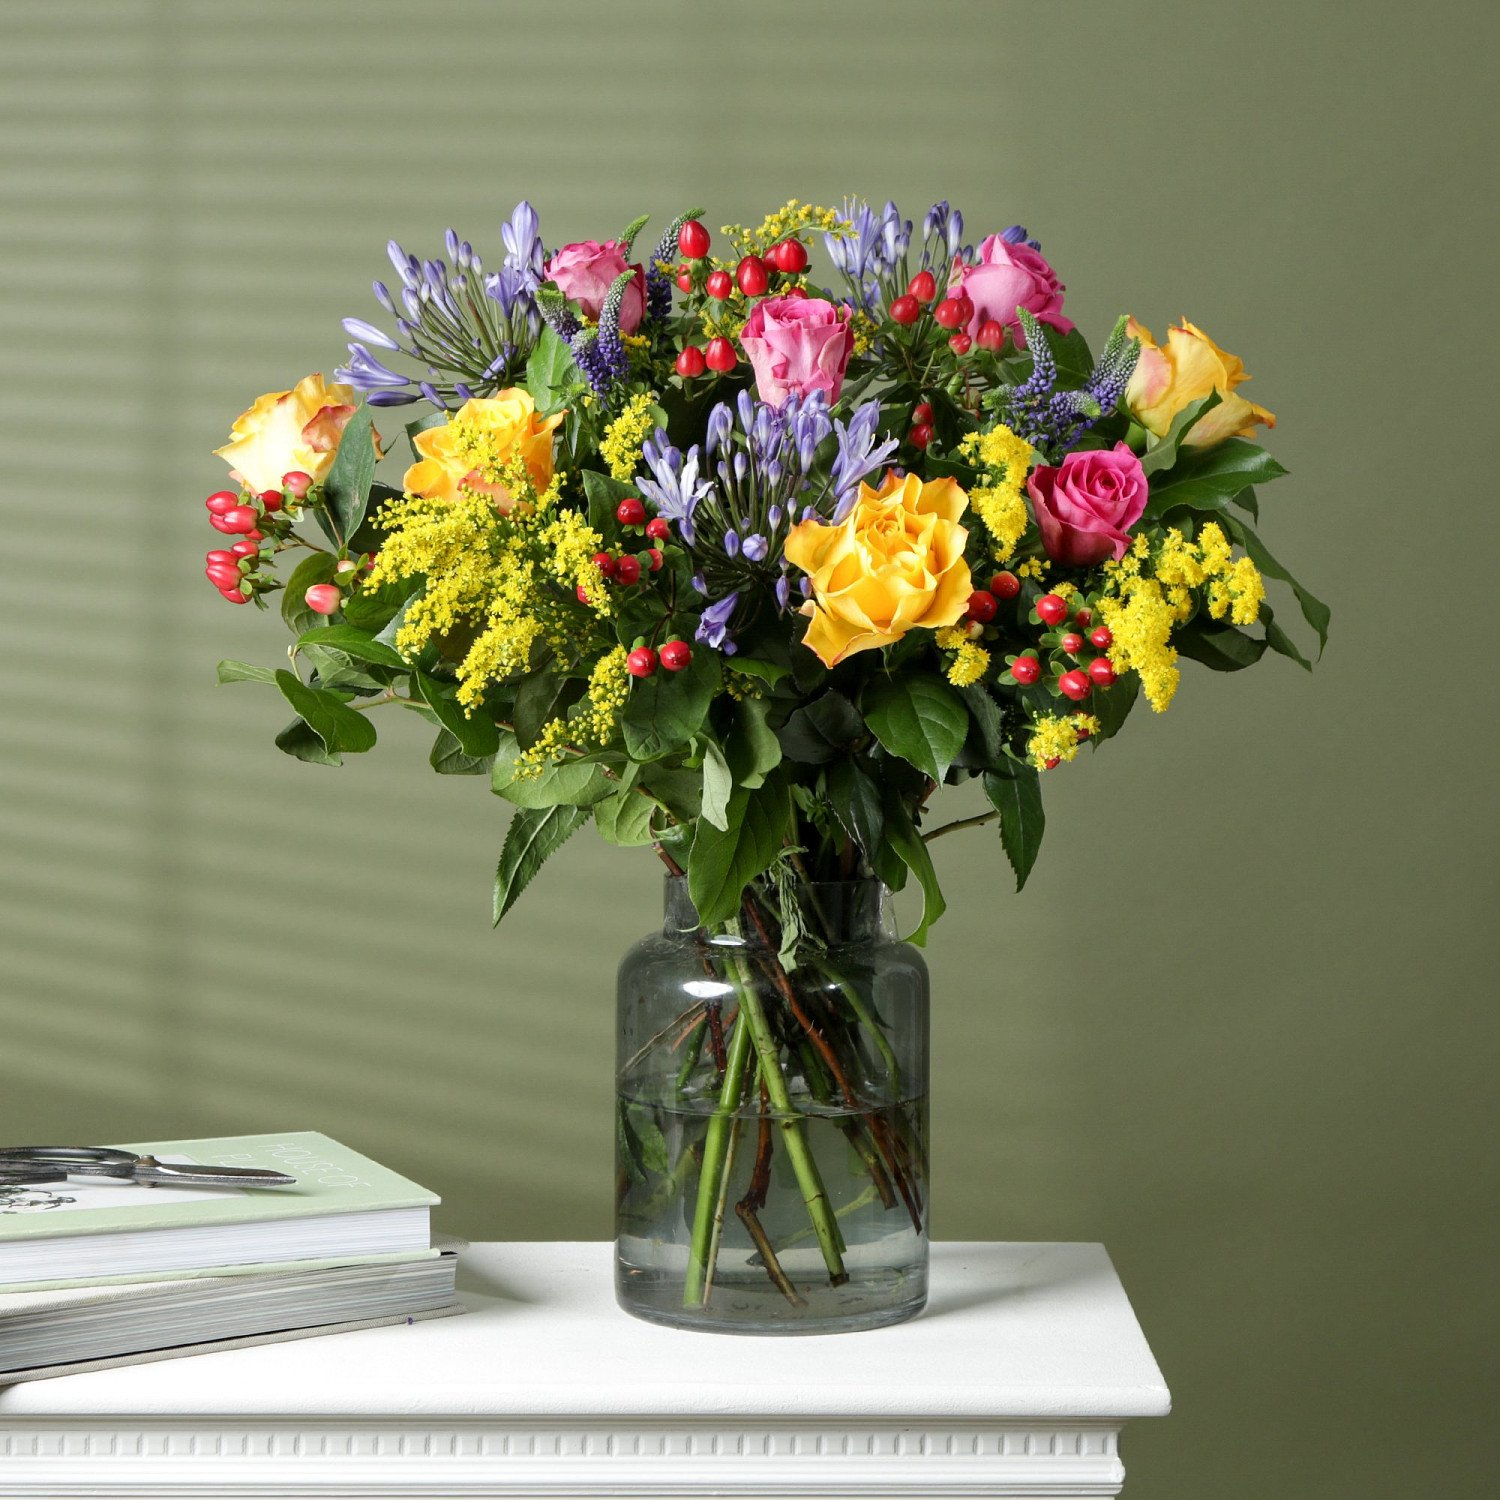 HAND-TIED BOUQUETS BY EXPERT FLORISTS - NEVER FAR AWAY £32.00 + Delivery!